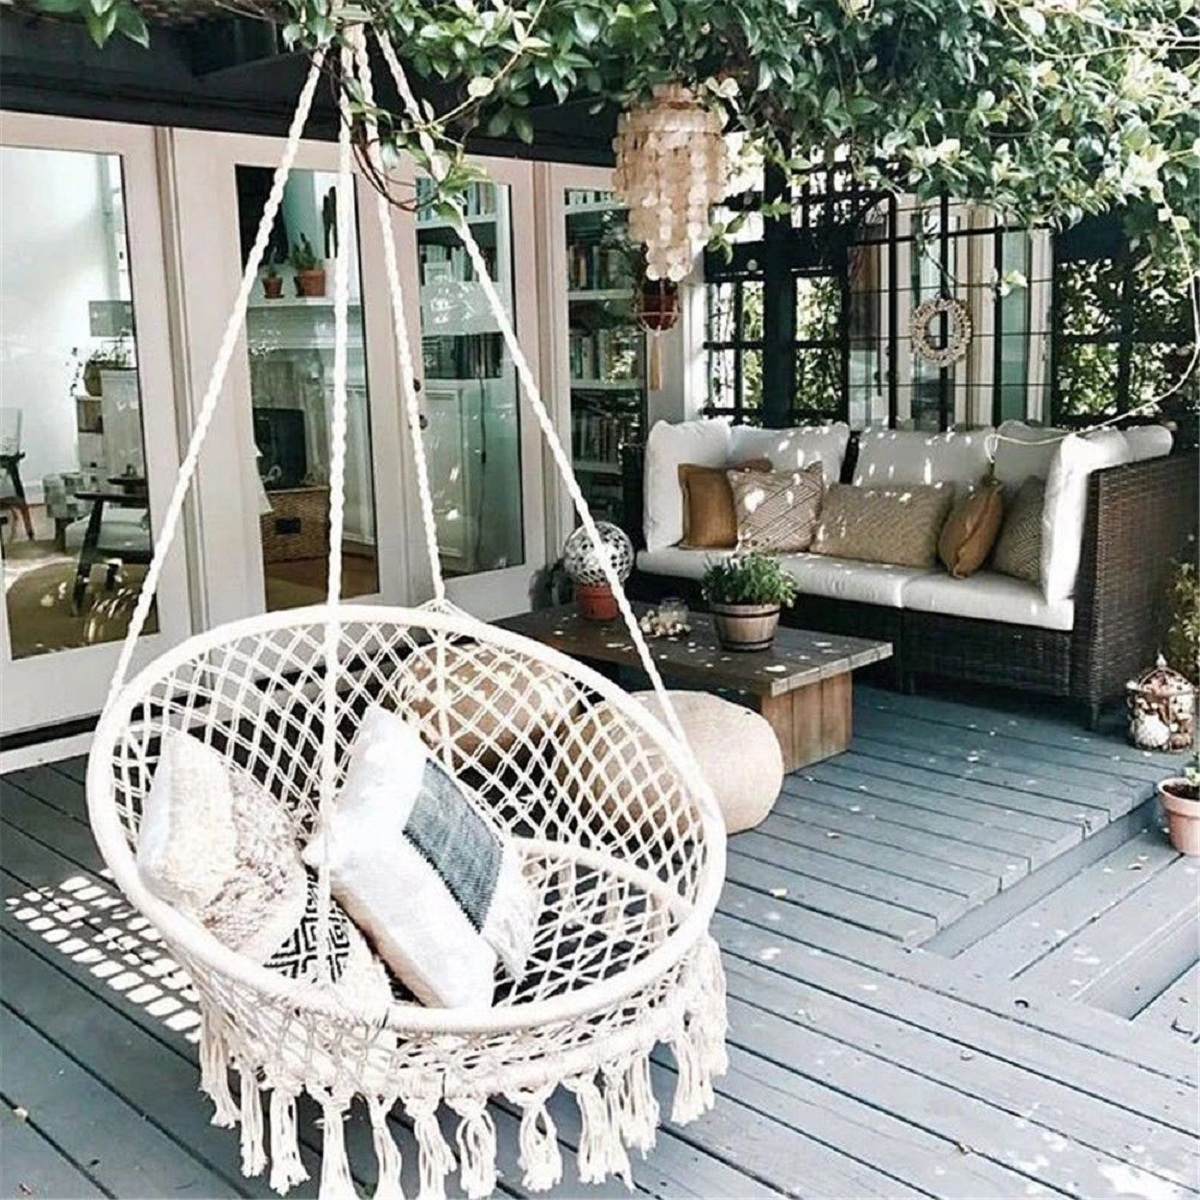 Hanging Outdoor Chairs Hanging Hammock Mesh Woven Rope Macrame Wooden Bar Chair Swing Outdoor Home Garden Patio Chair Seat Install Tool Home Decor Gift